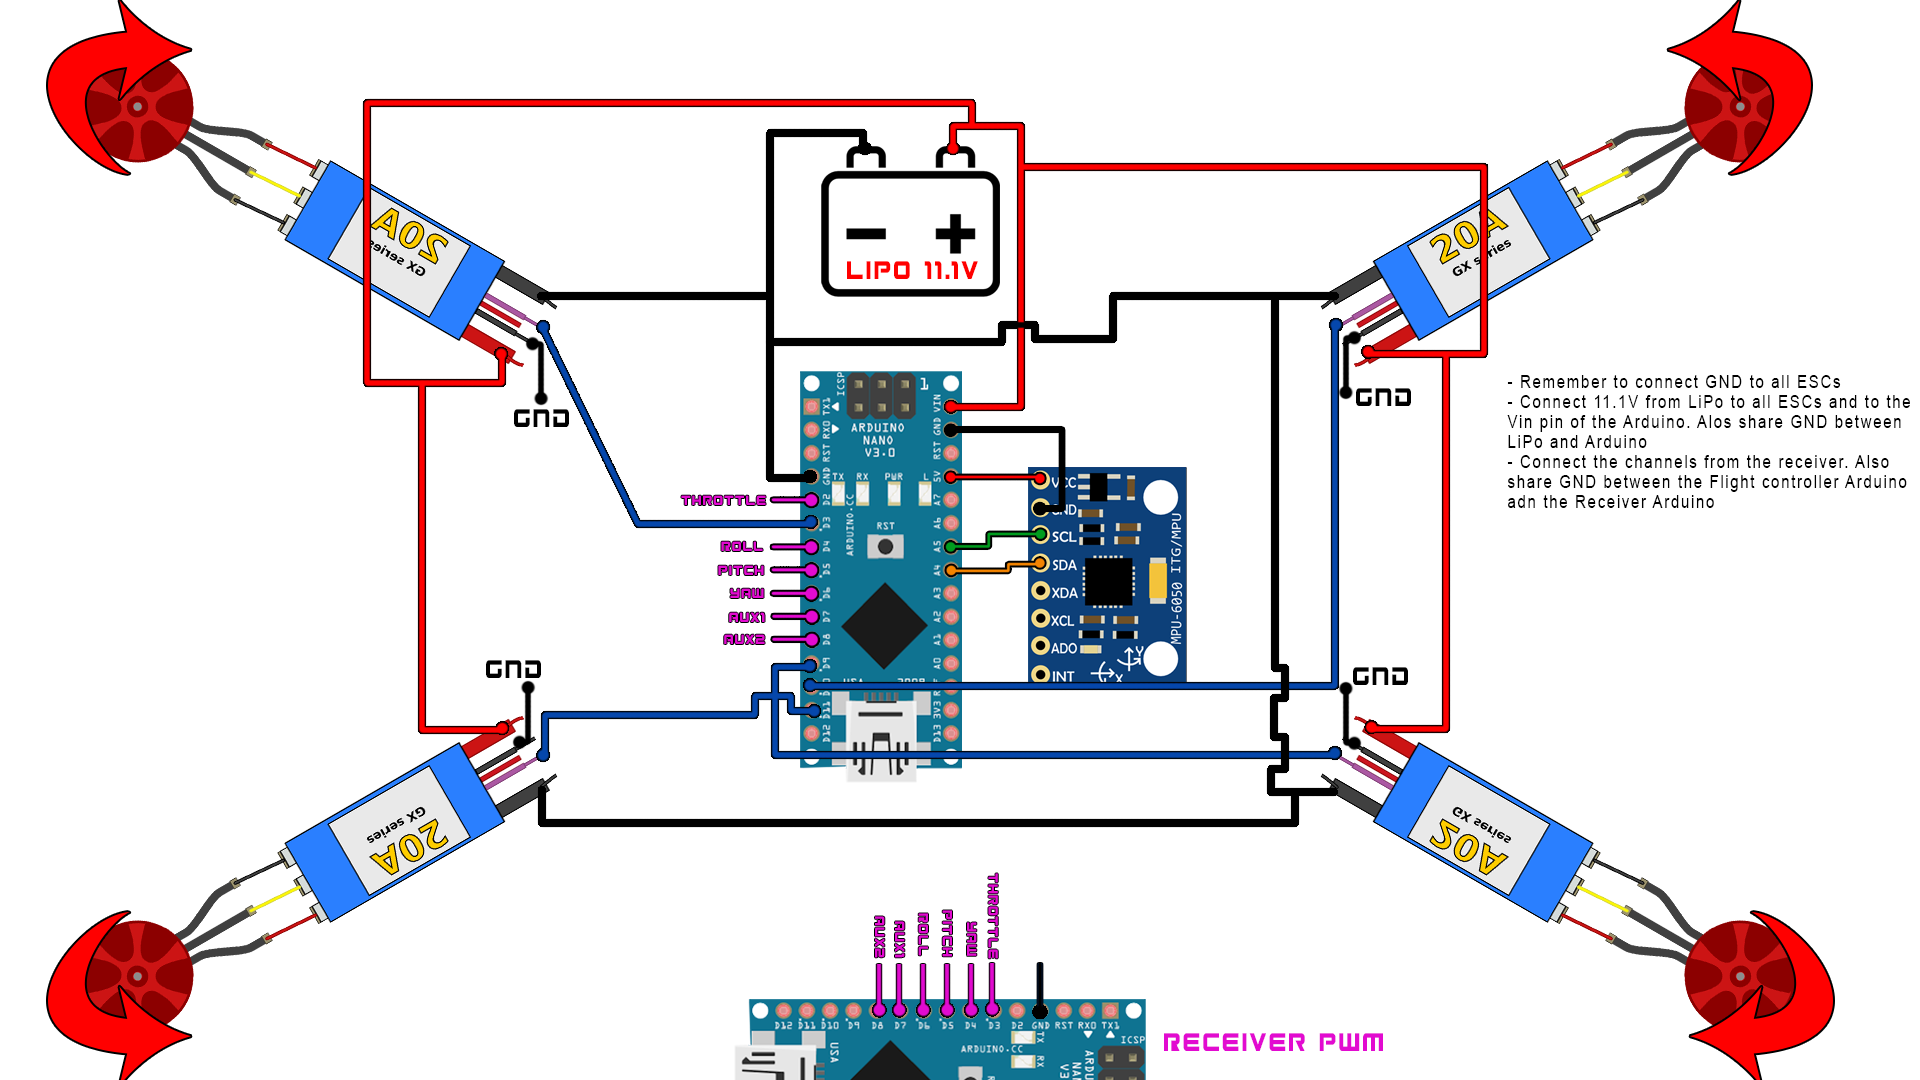 Arduino Multiwii Flight Controller. This Is Sort Of A Full Schematic The Flight Controller We Can Se Receiver With 6 Channels 4 Escs Adn Brushless Motors. Wiring. Drone Esc Wiring Diagram At Scoala.co